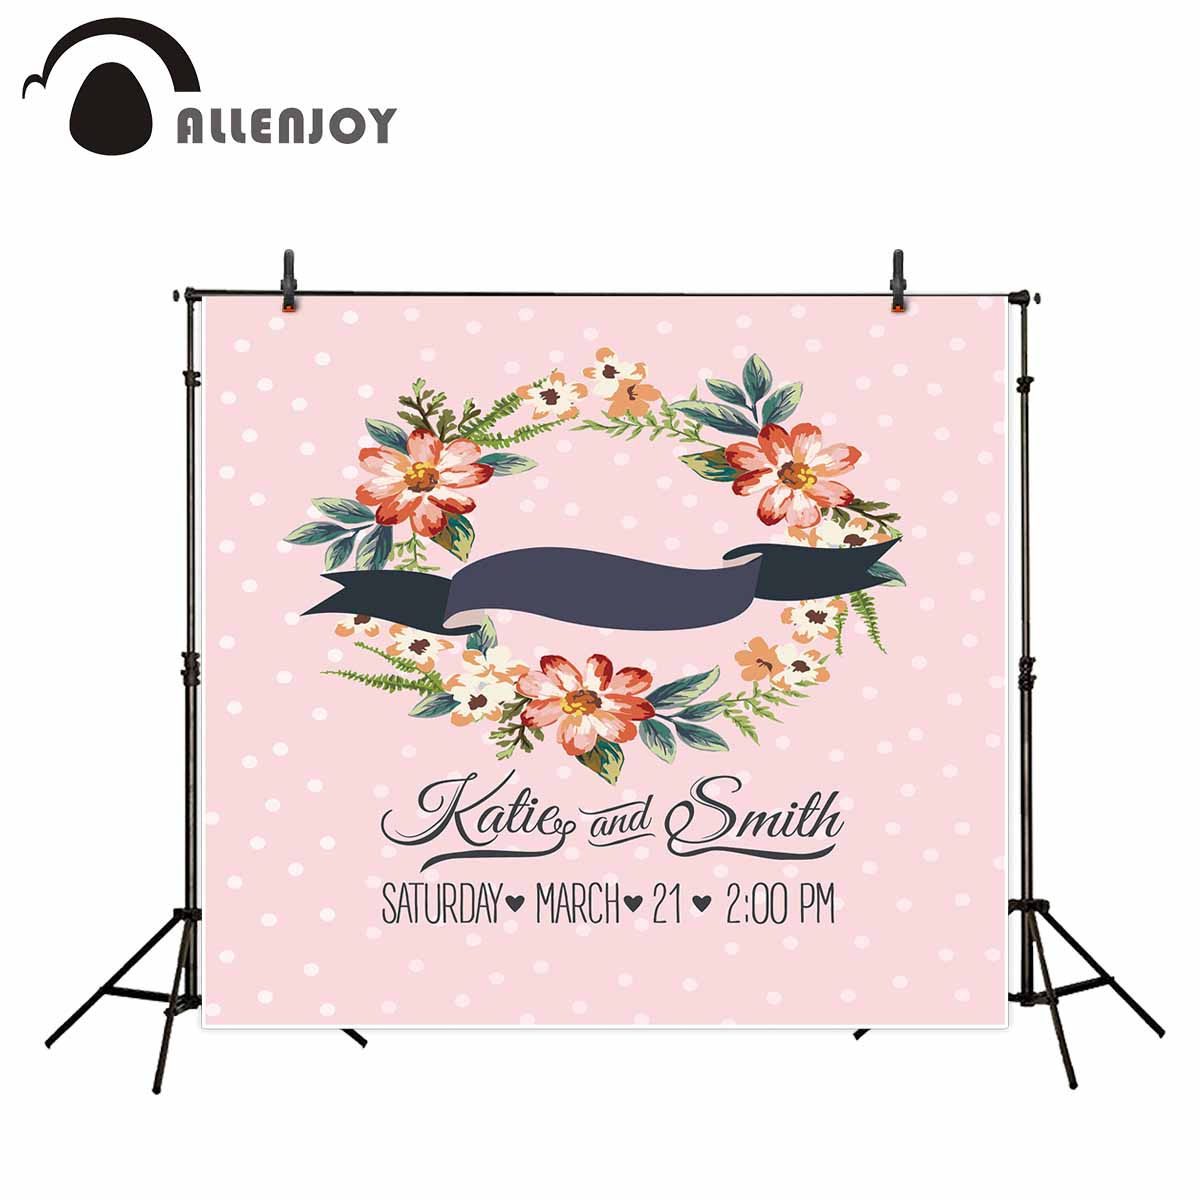 Allenjoy photo background wedding backdrop flowers Pink dots custom background camera fotografica profissional vinyl backdrops allenjoy photography background lovely clouds cotton hearts stars rainbow backdrop photo studio camera fotografica